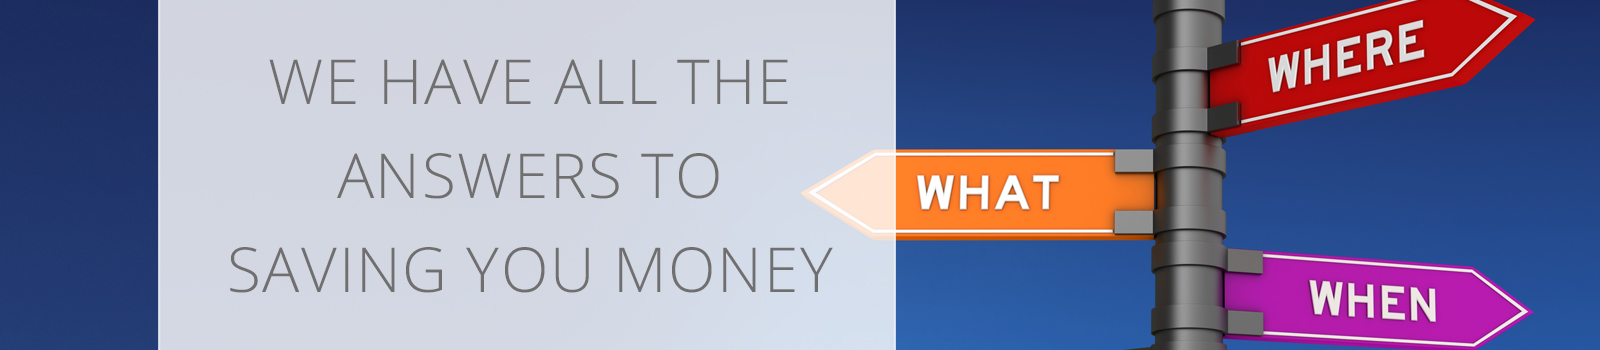 We have all the answers to saving you money